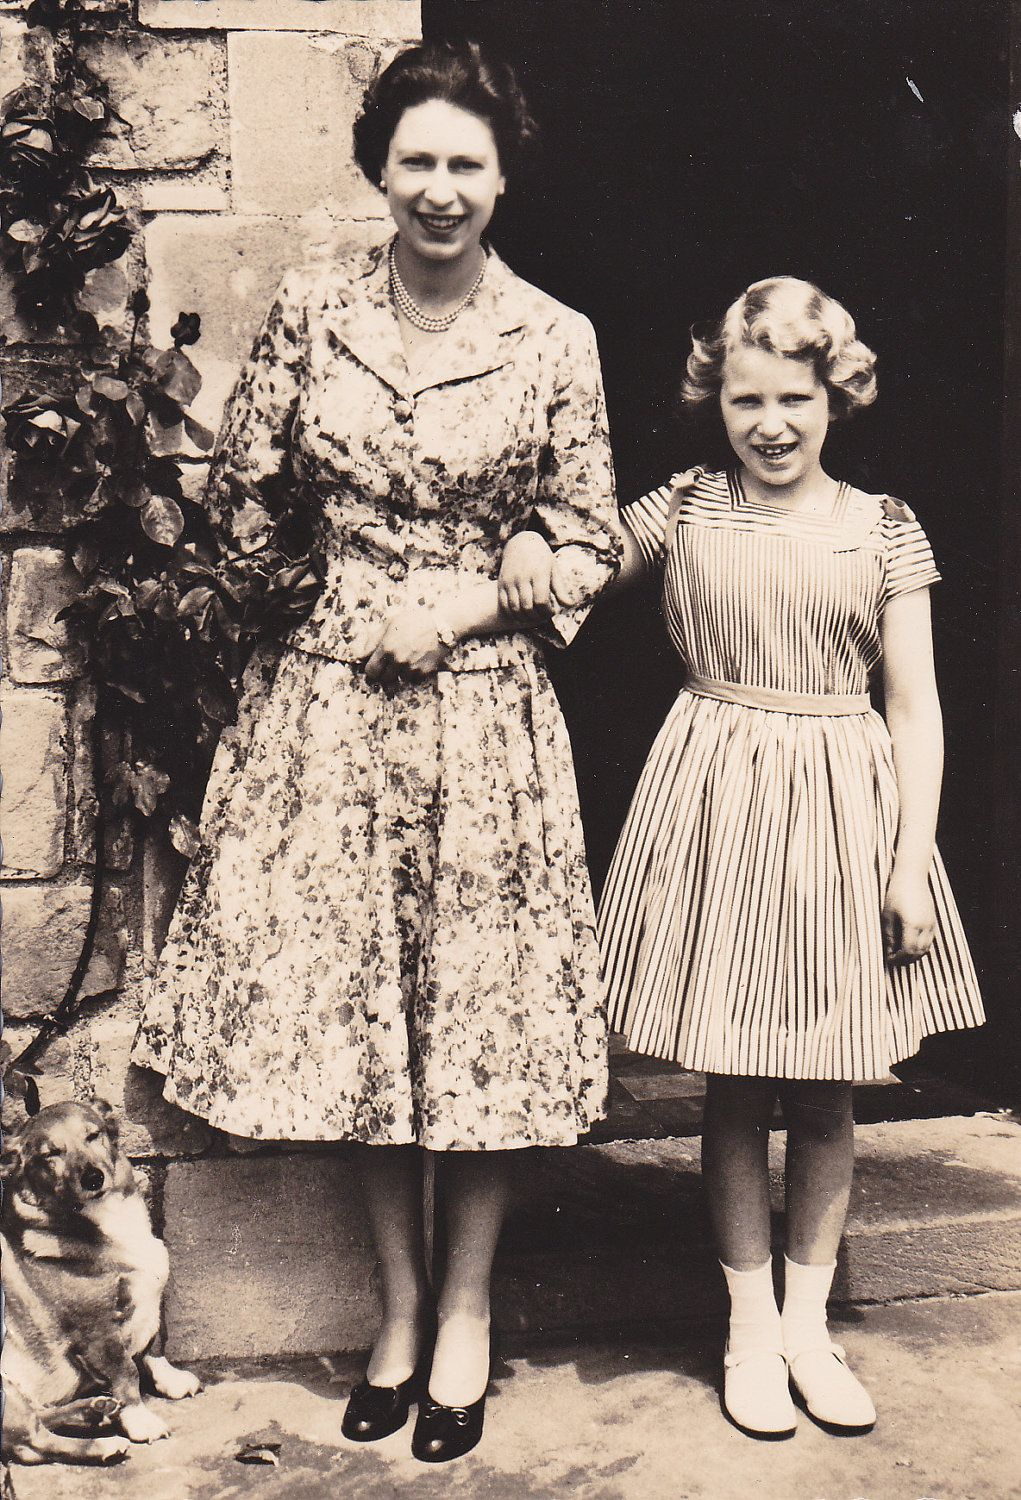 Queen Elizabeth II & Princess Anne. Love this picture for